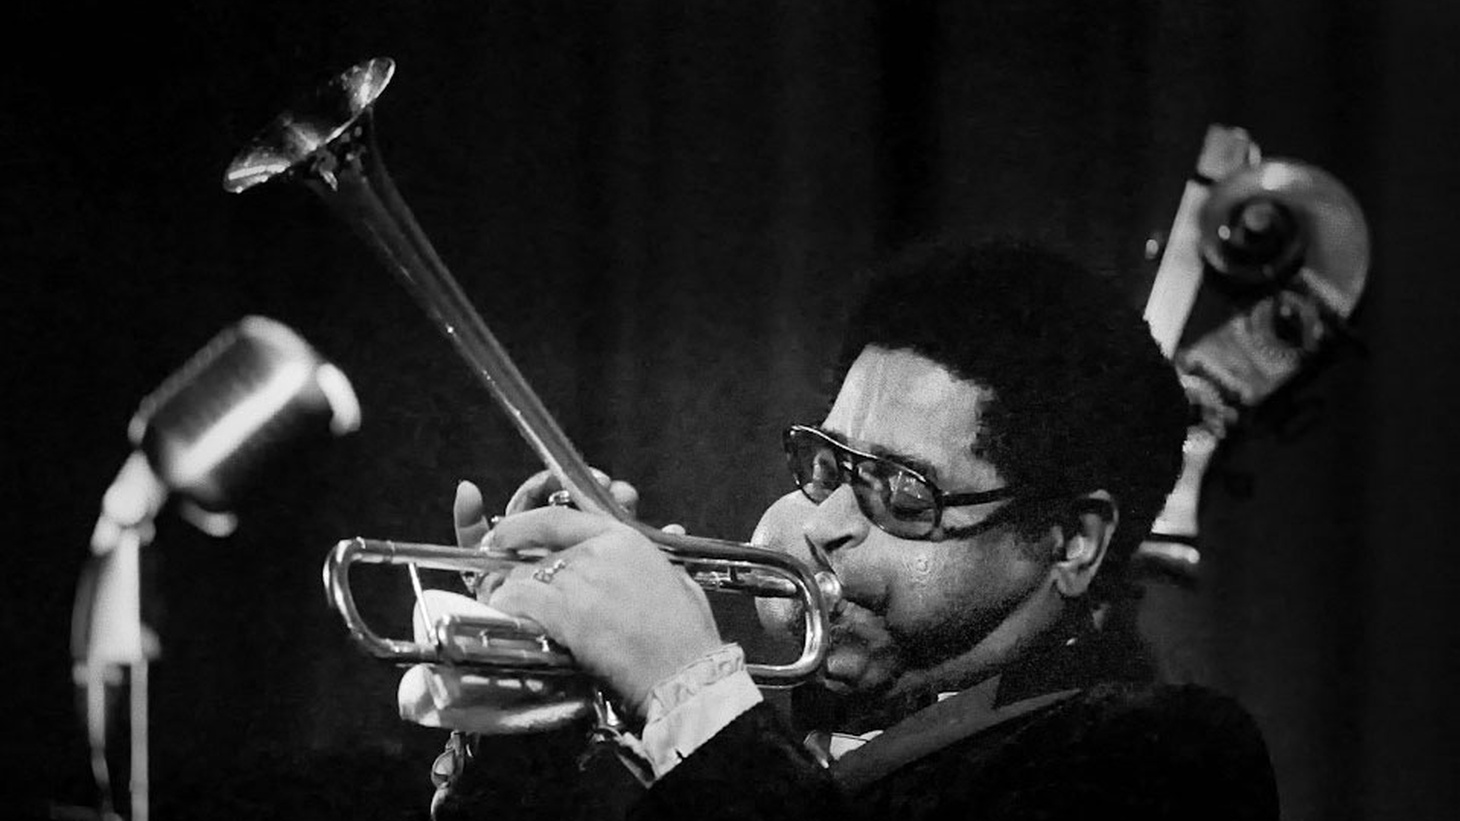 """October 21st marks the 100th anniversary of the birth of John Birks (""""Dizzy"""") Gillespie, an innovator of giant proportion who, along with Charlie Parker and Thelonious Monk, led a musical revolution called bebop that still reverberates. We'll celebrate his centennial this weekend (10/21) and next (10/28) on Strictly Jazz, with the first show concentrating, but not limited to, his formative years."""